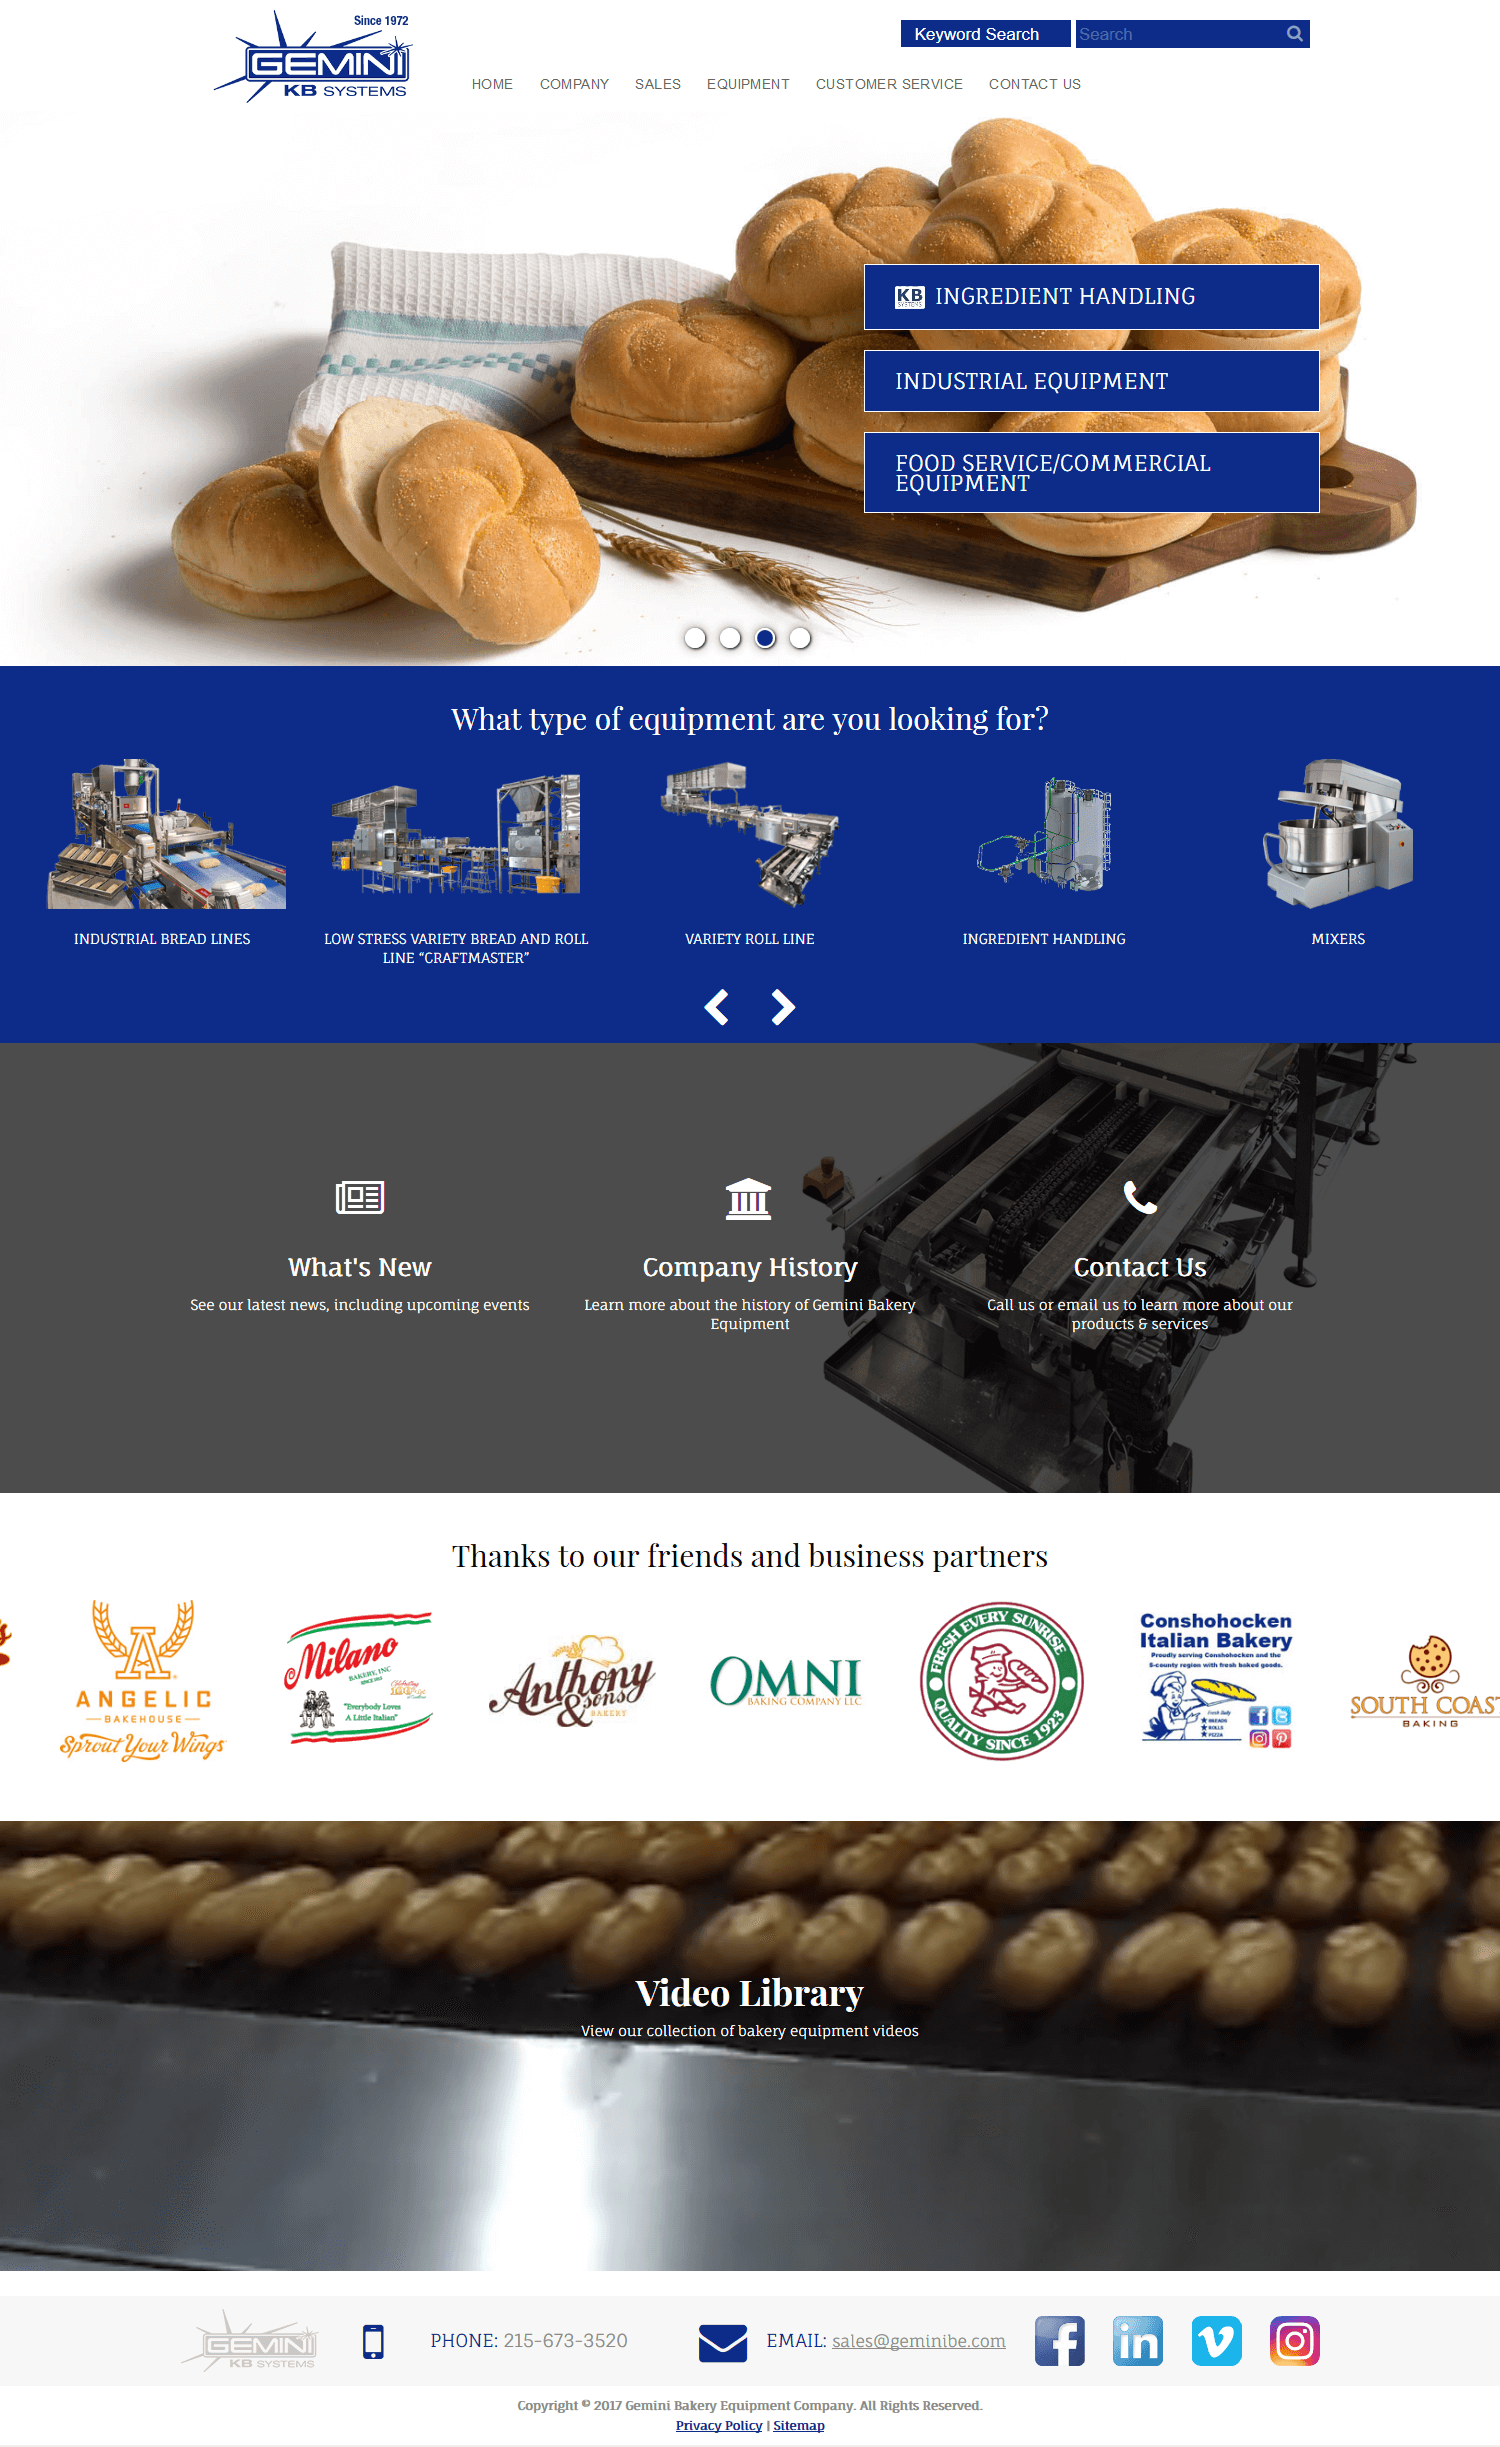 Gemini Bakery Equipment